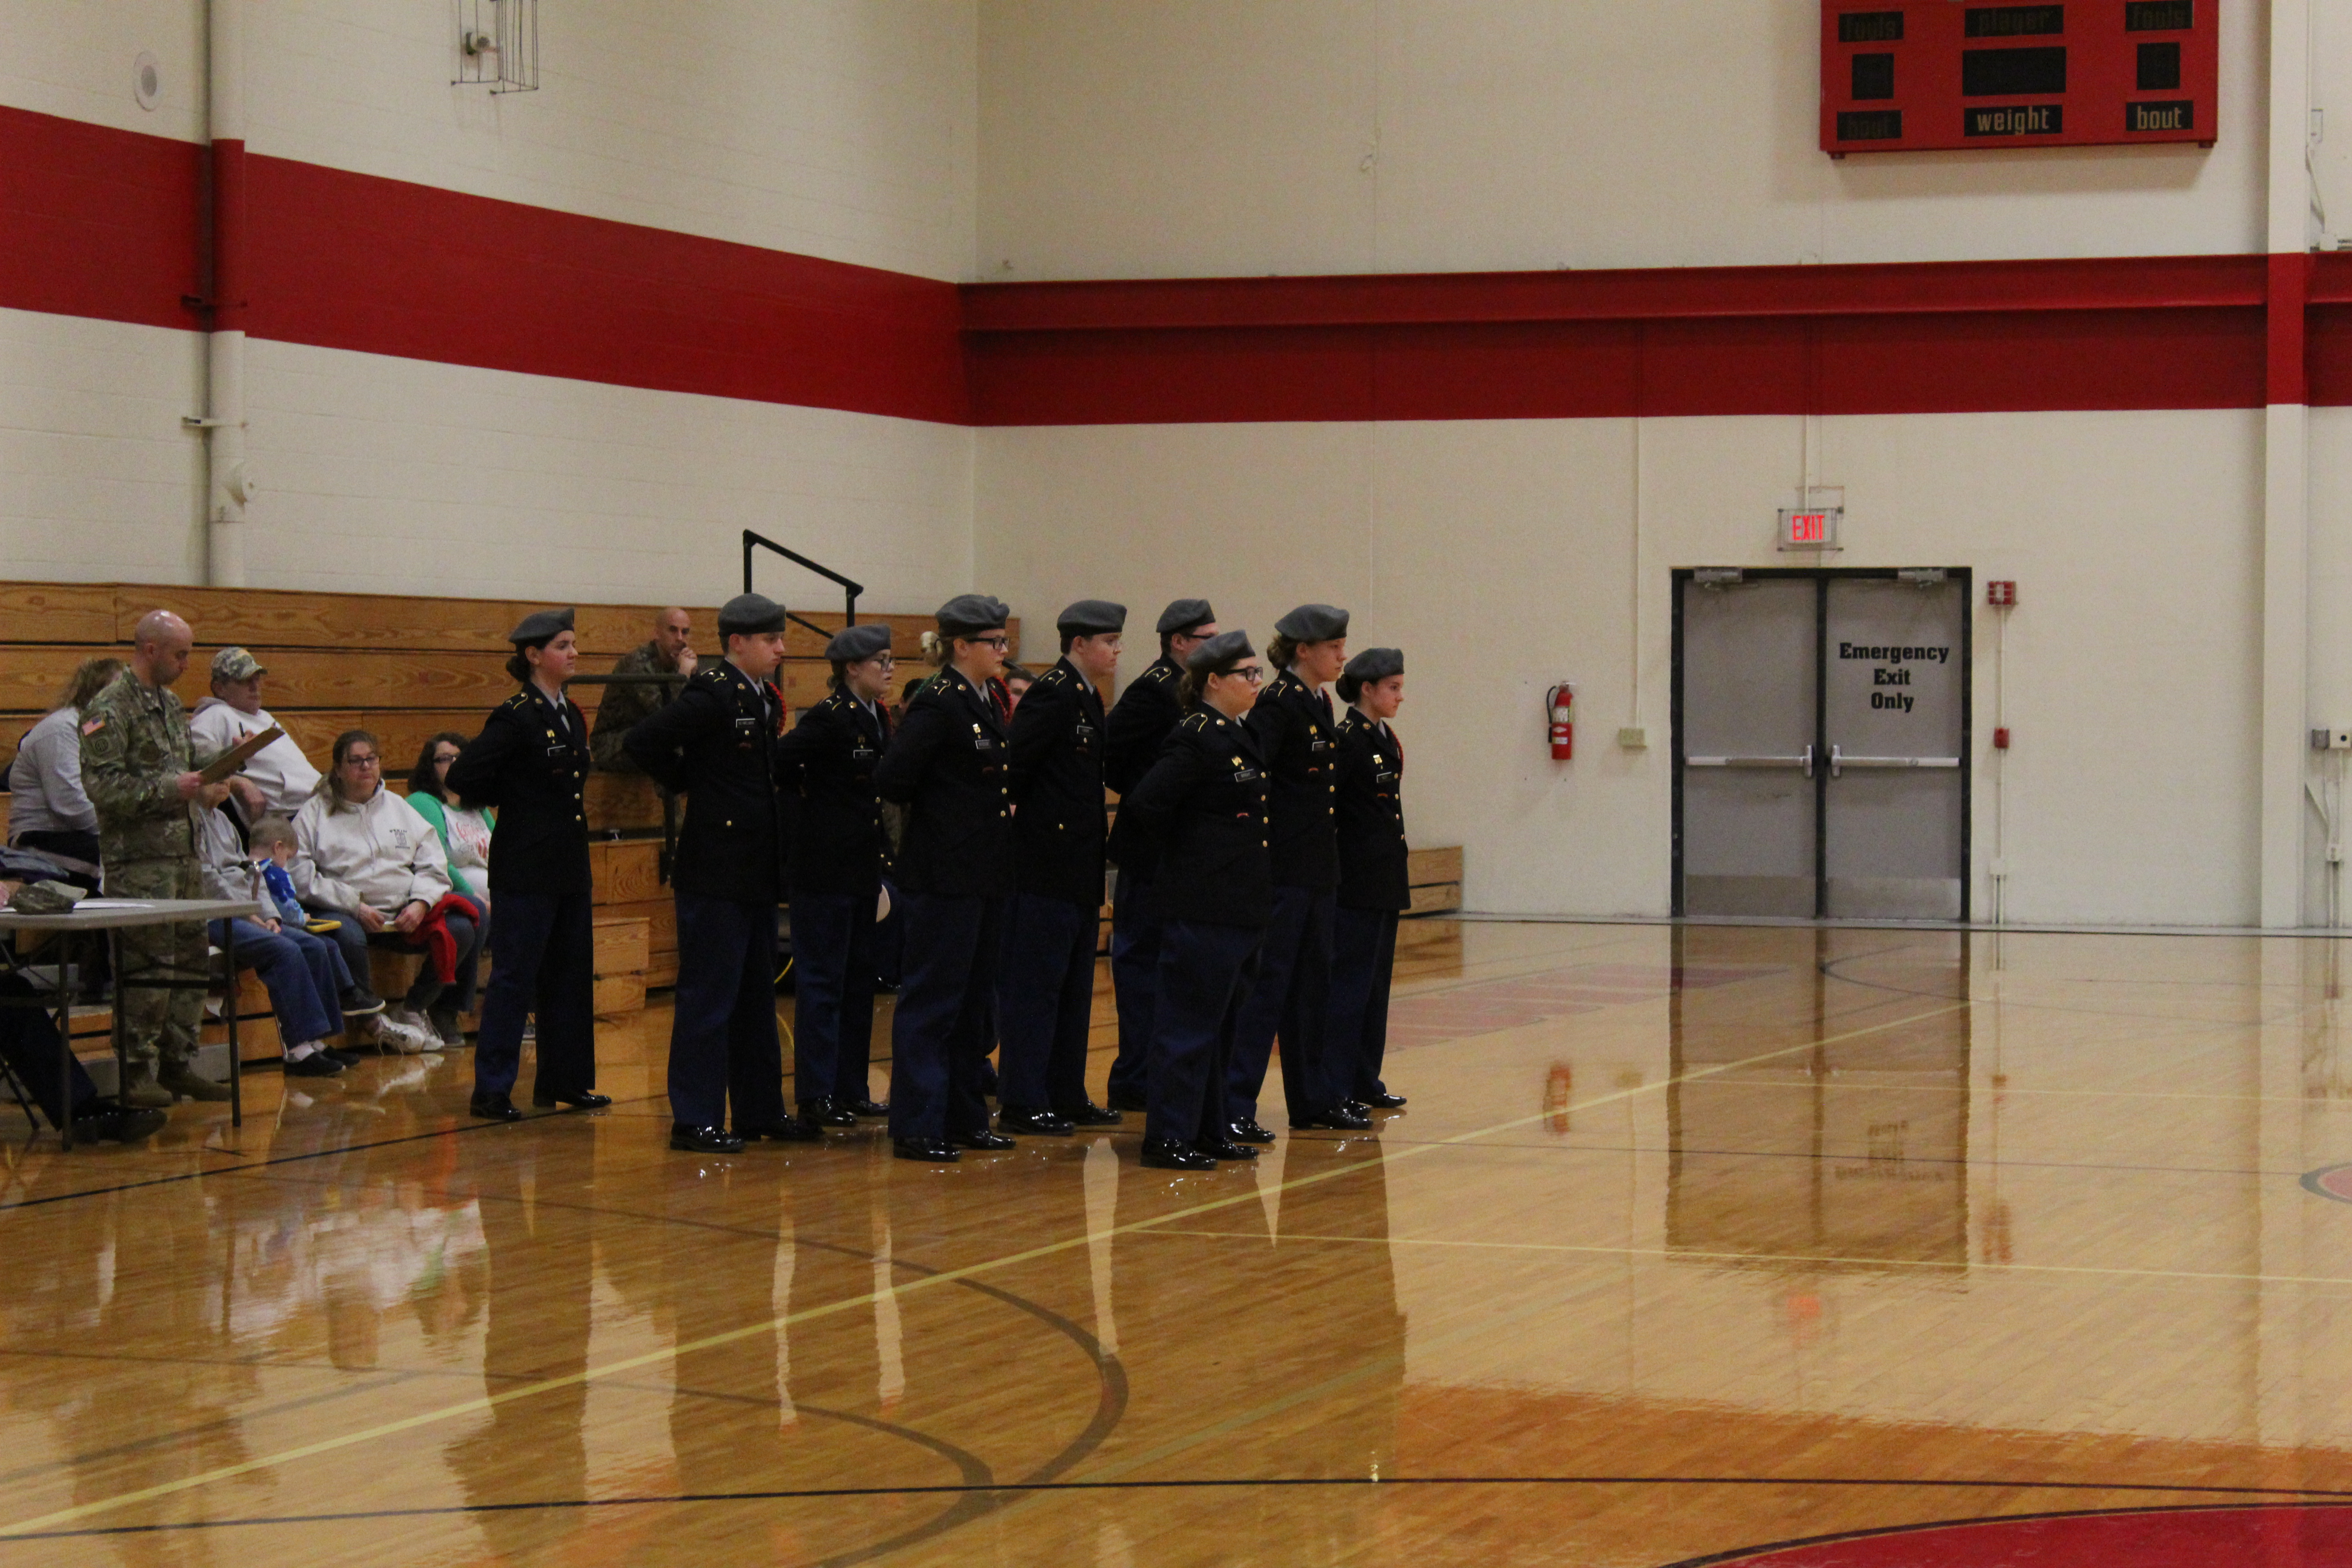 A photo of the drill team in the school gym